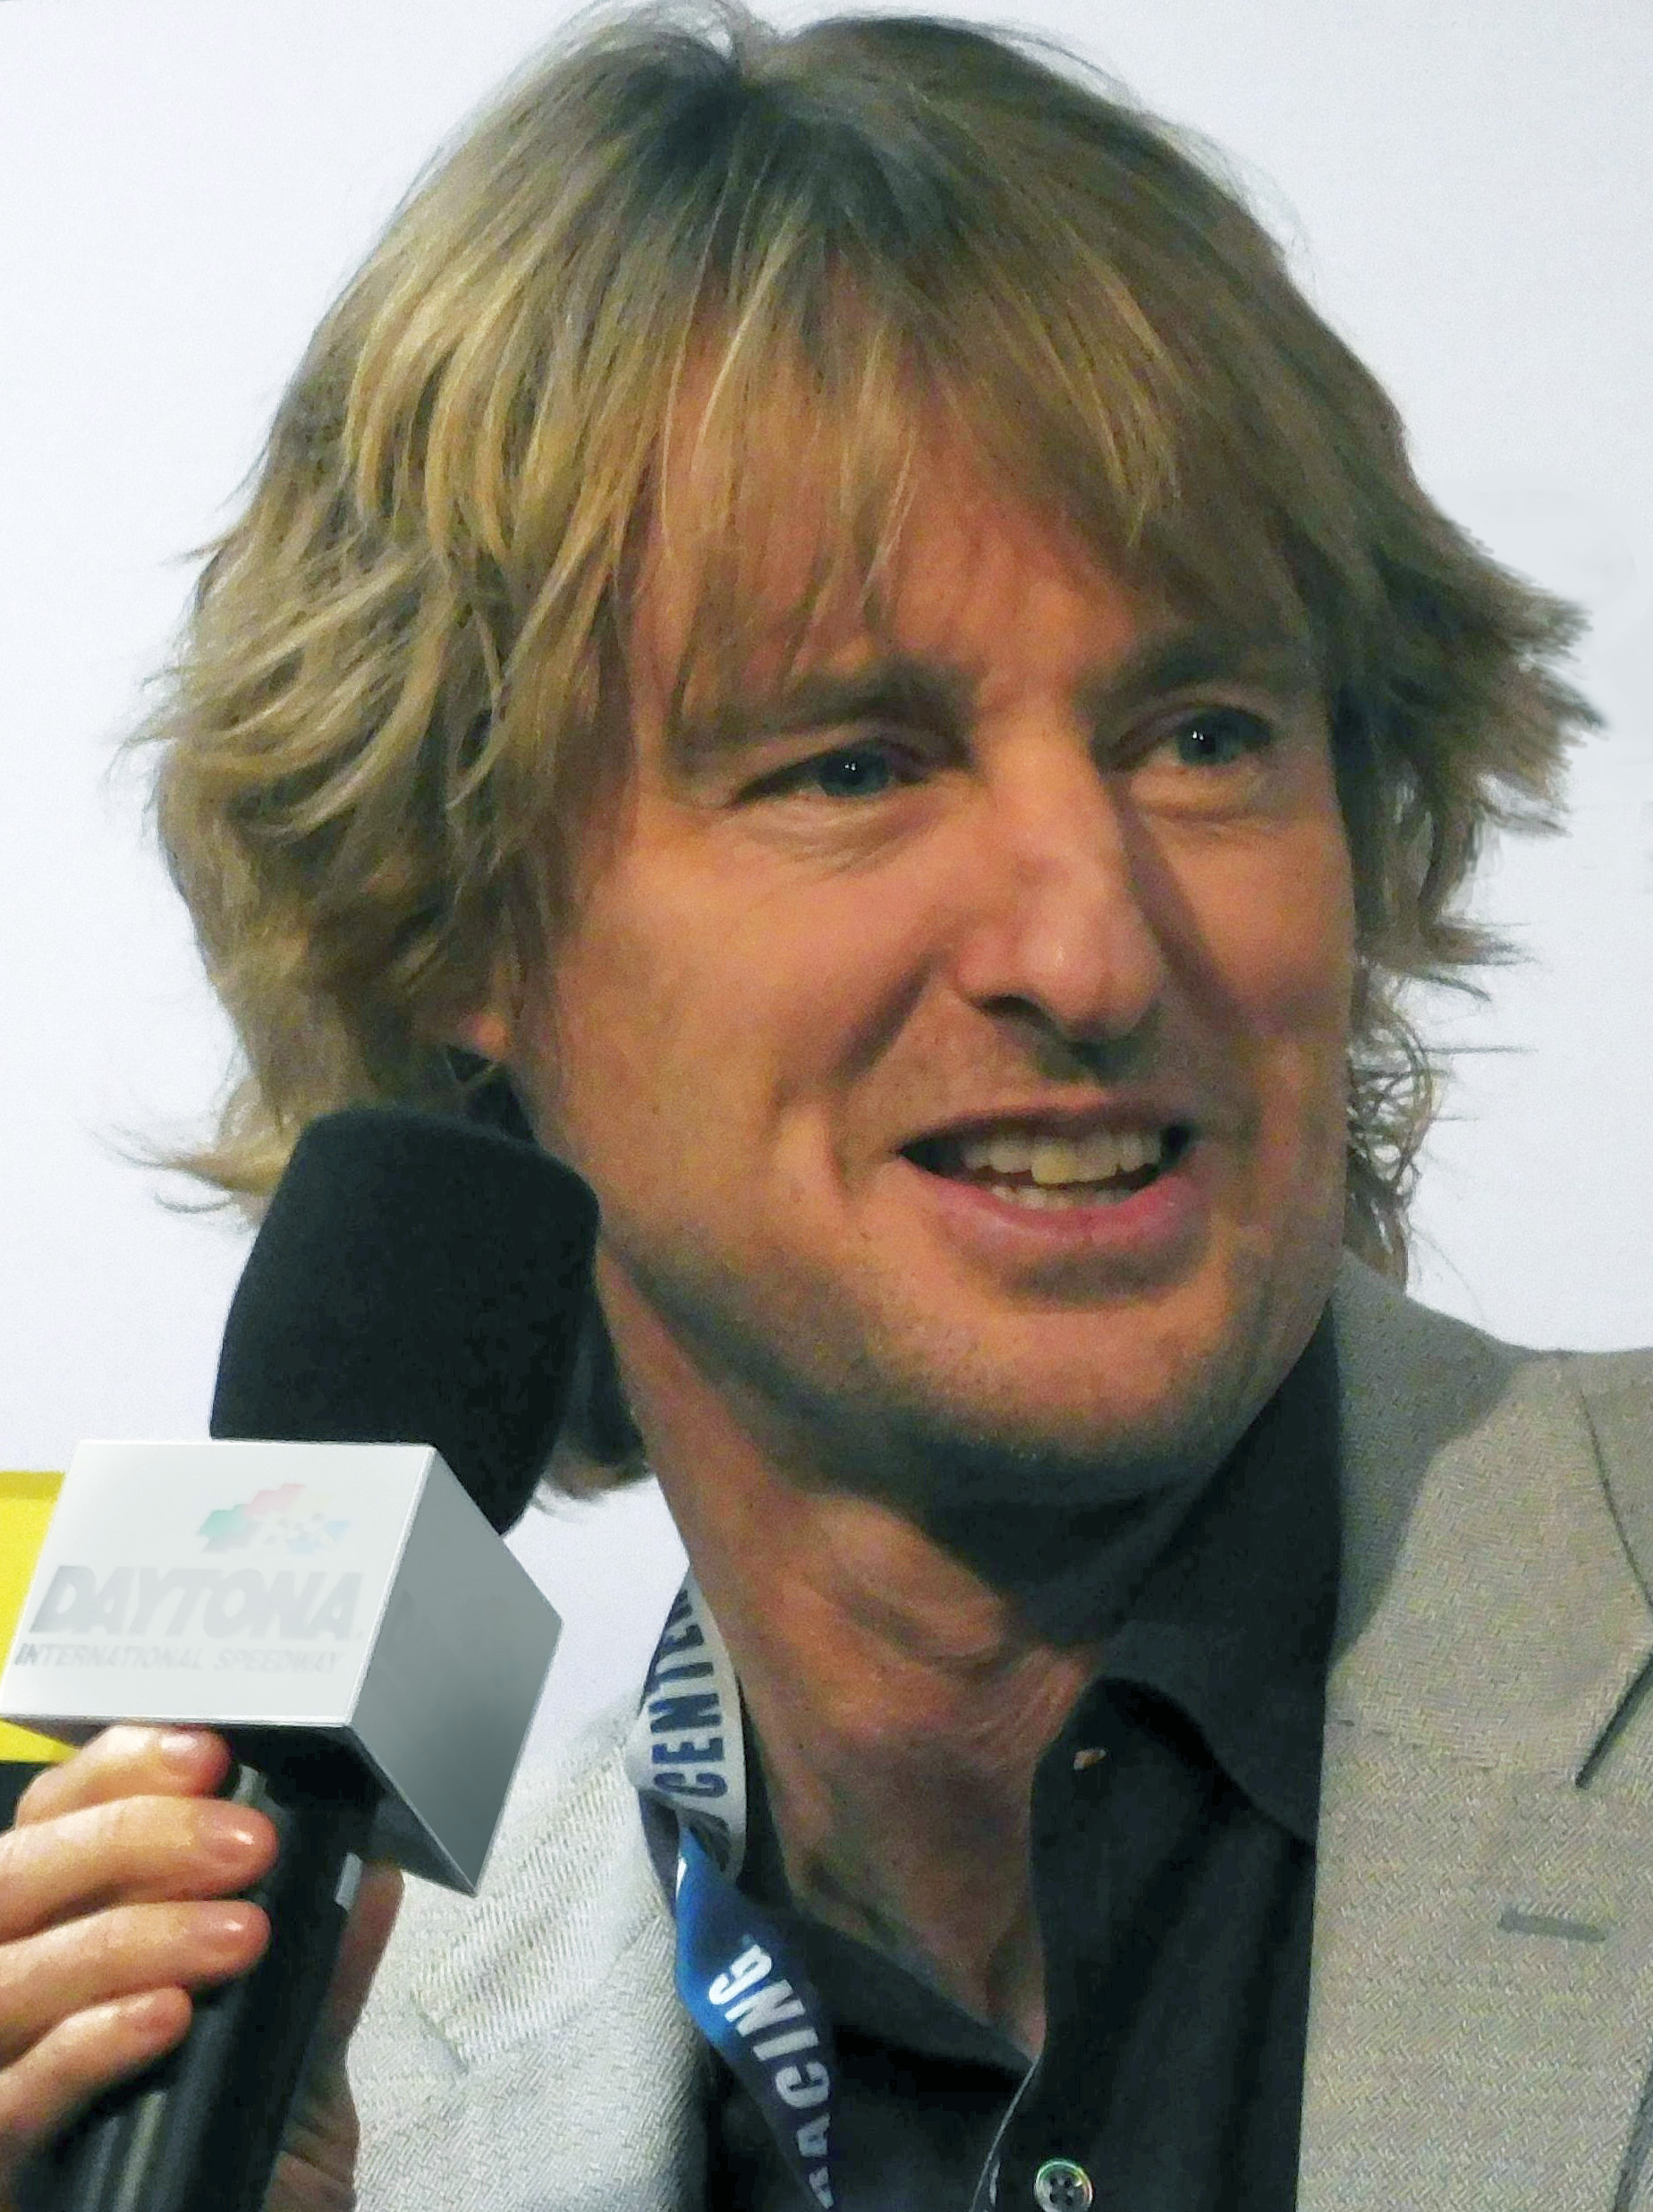 The 52-year old son of father Robert Andrew Wilson and mother Laura Cunningham Wilson Owen Wilson in 2021 photo. Owen Wilson earned a  million dollar salary - leaving the net worth at 40 million in 2021